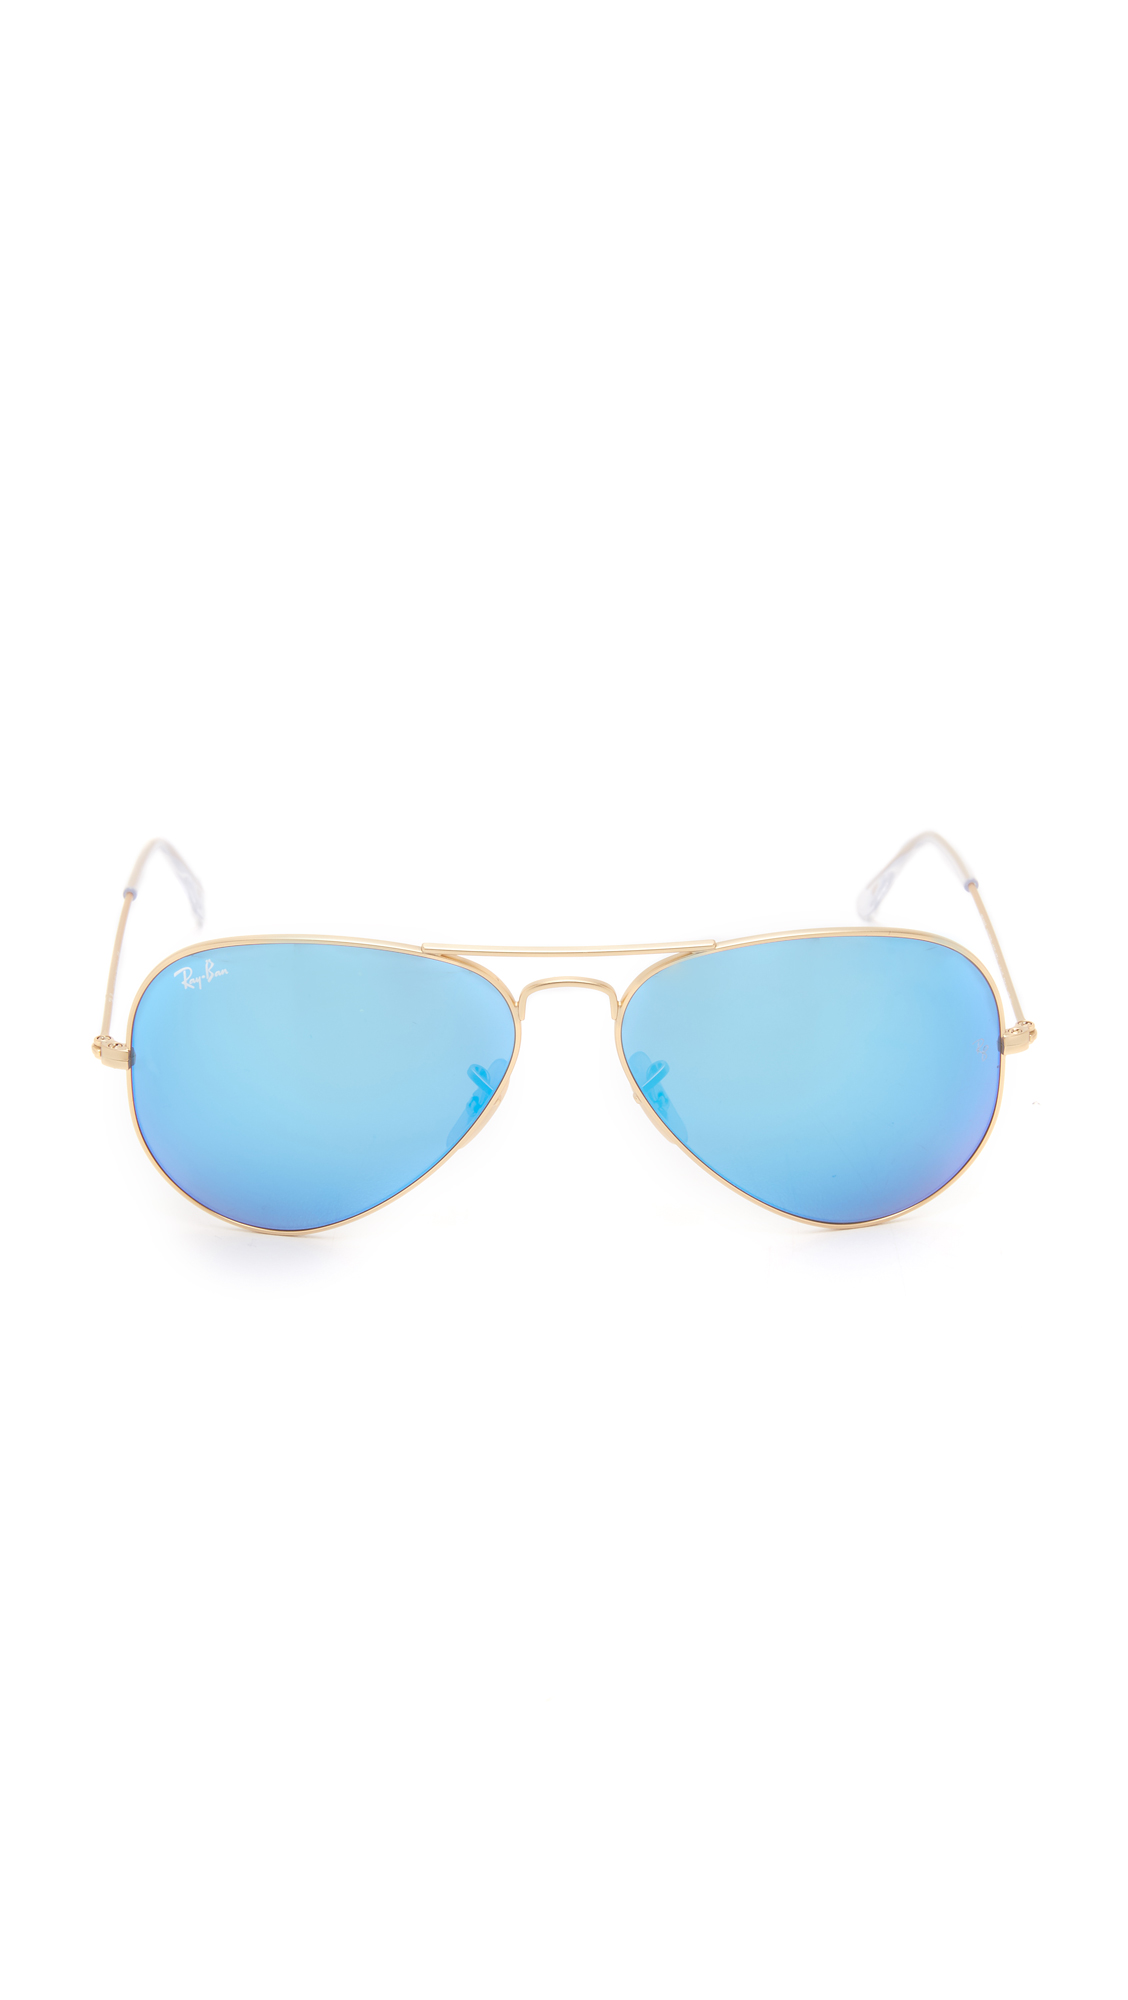 aviator blue  Ray-Ban Mirrored Matte Classic Aviator Sunglasses